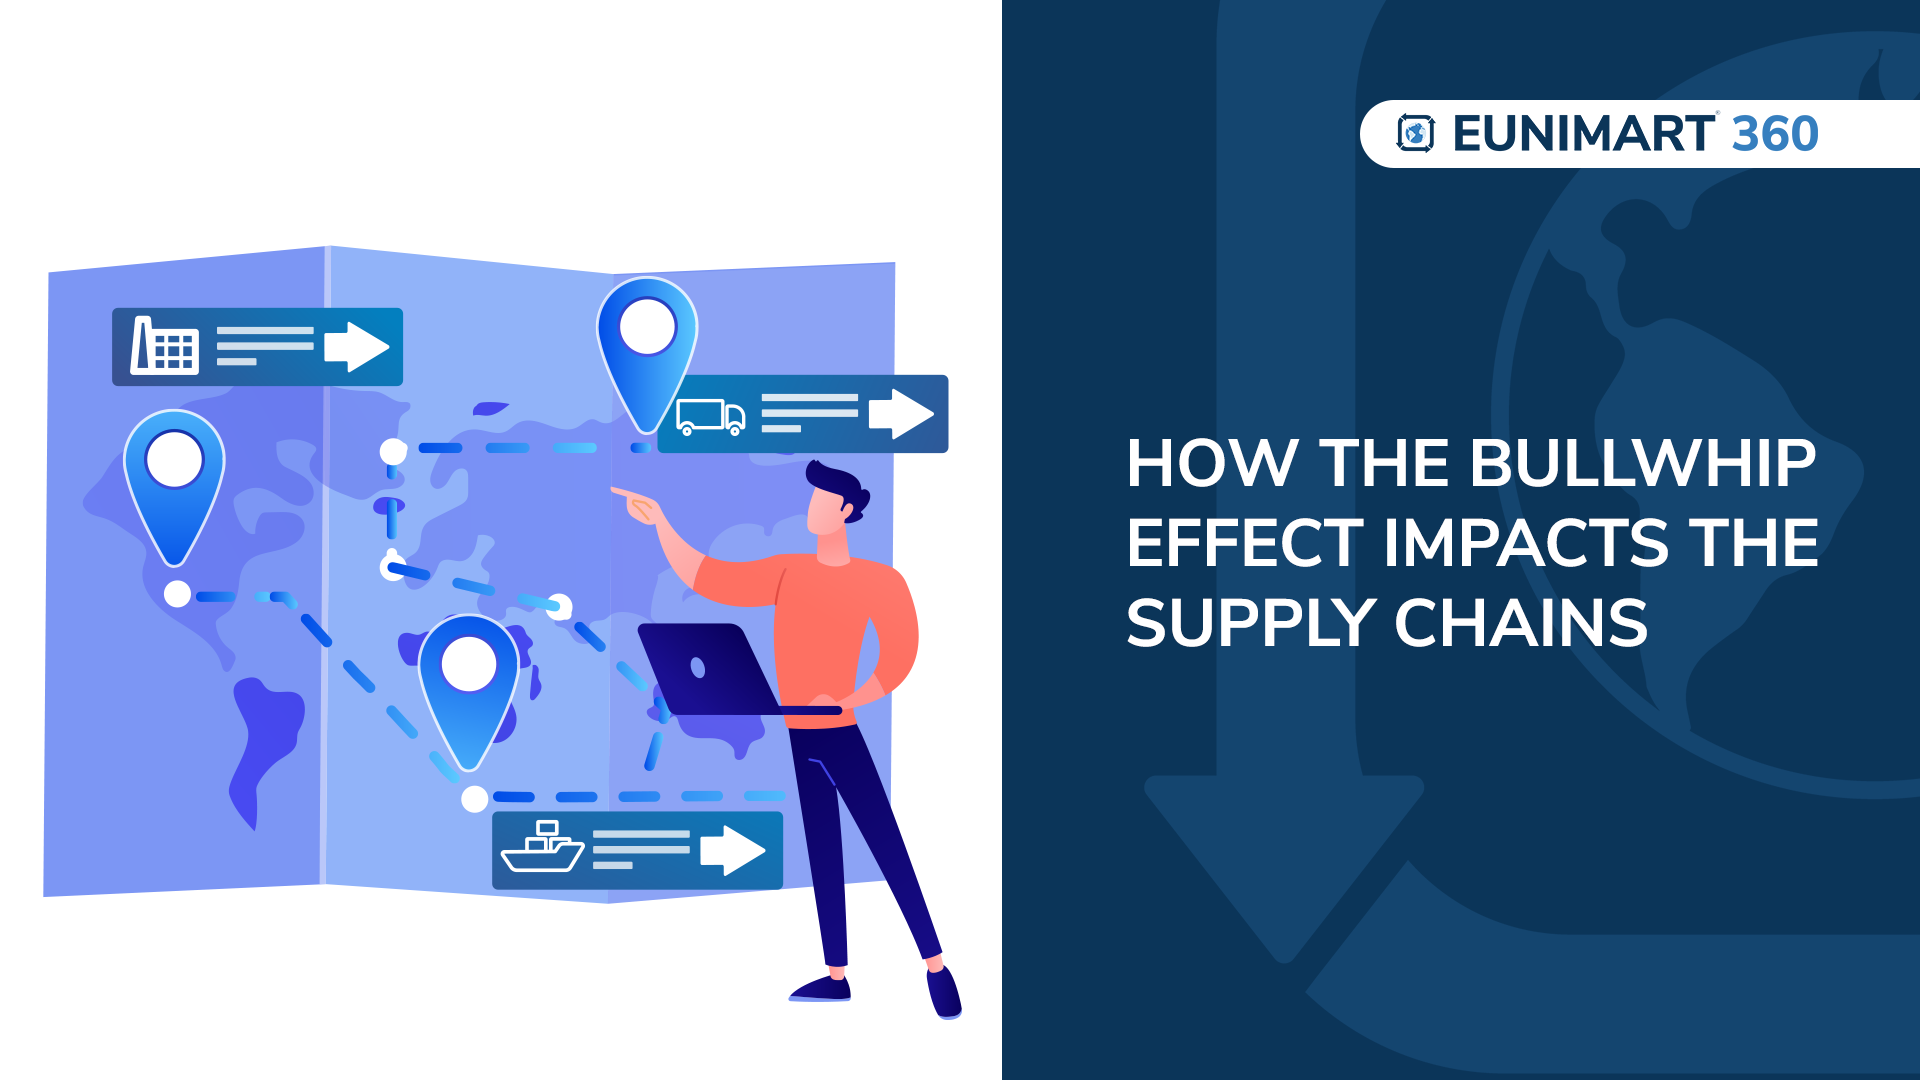 How the Bullwhip Effect Impacts the Supply Chains